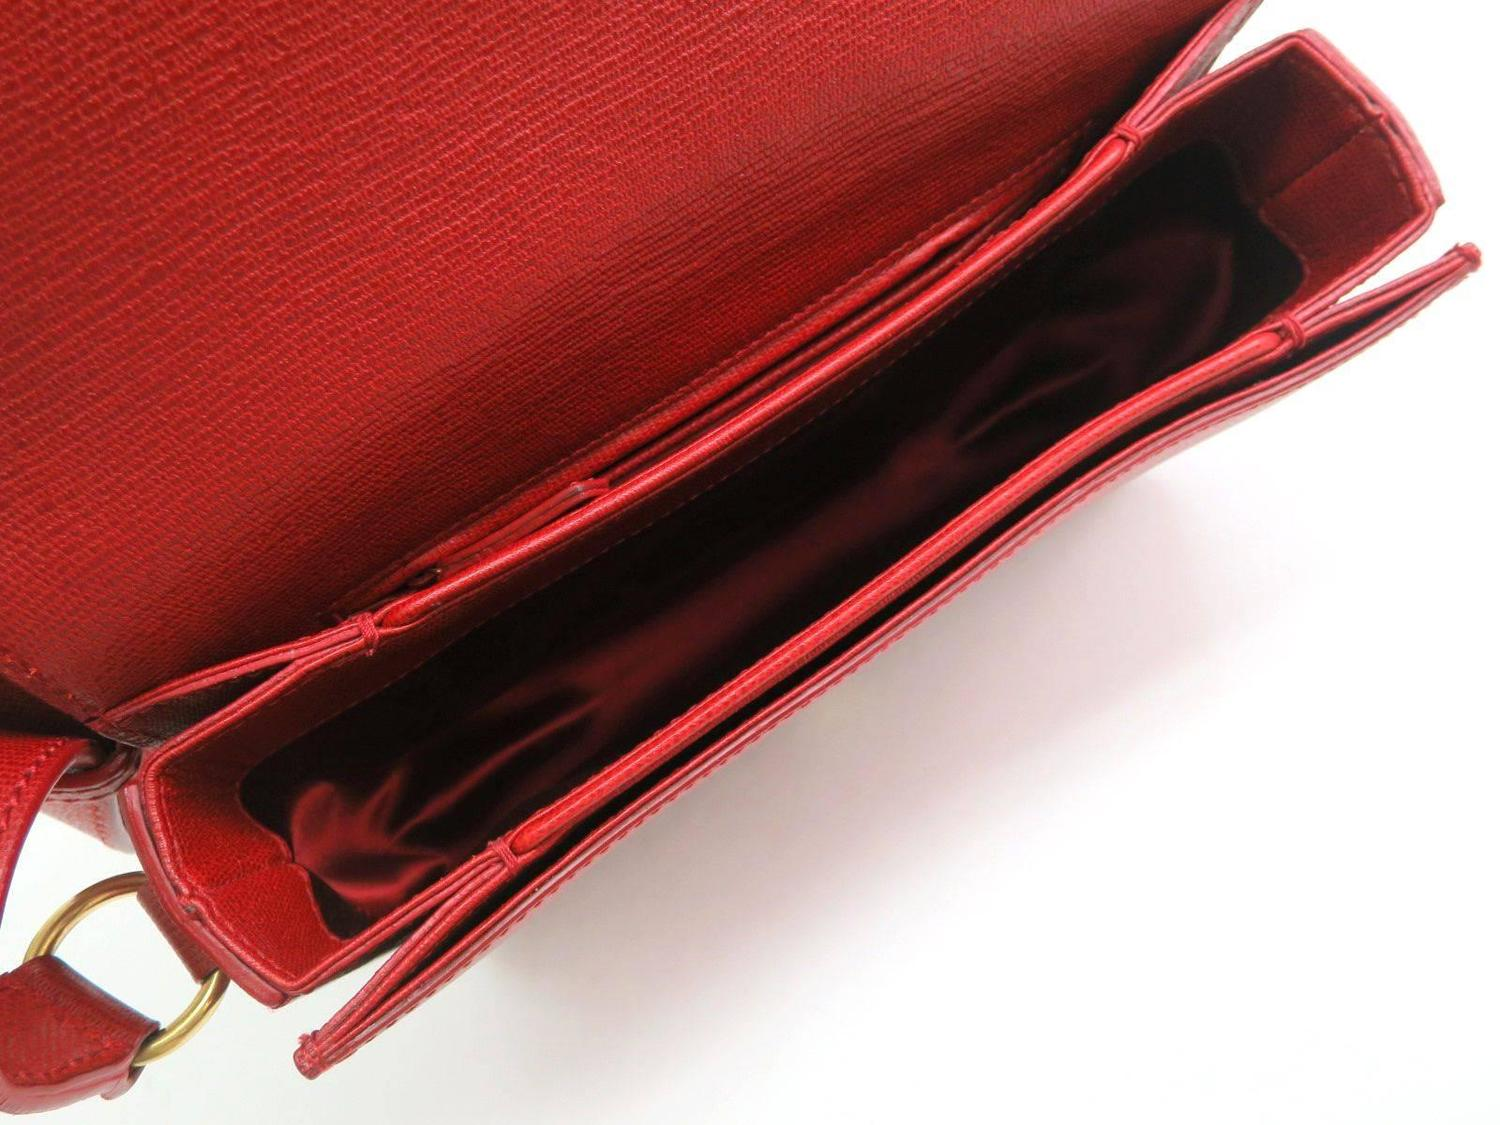 Yves Saint Laurent (YSL) Chyc Y Red Leather Gold Hardware ...